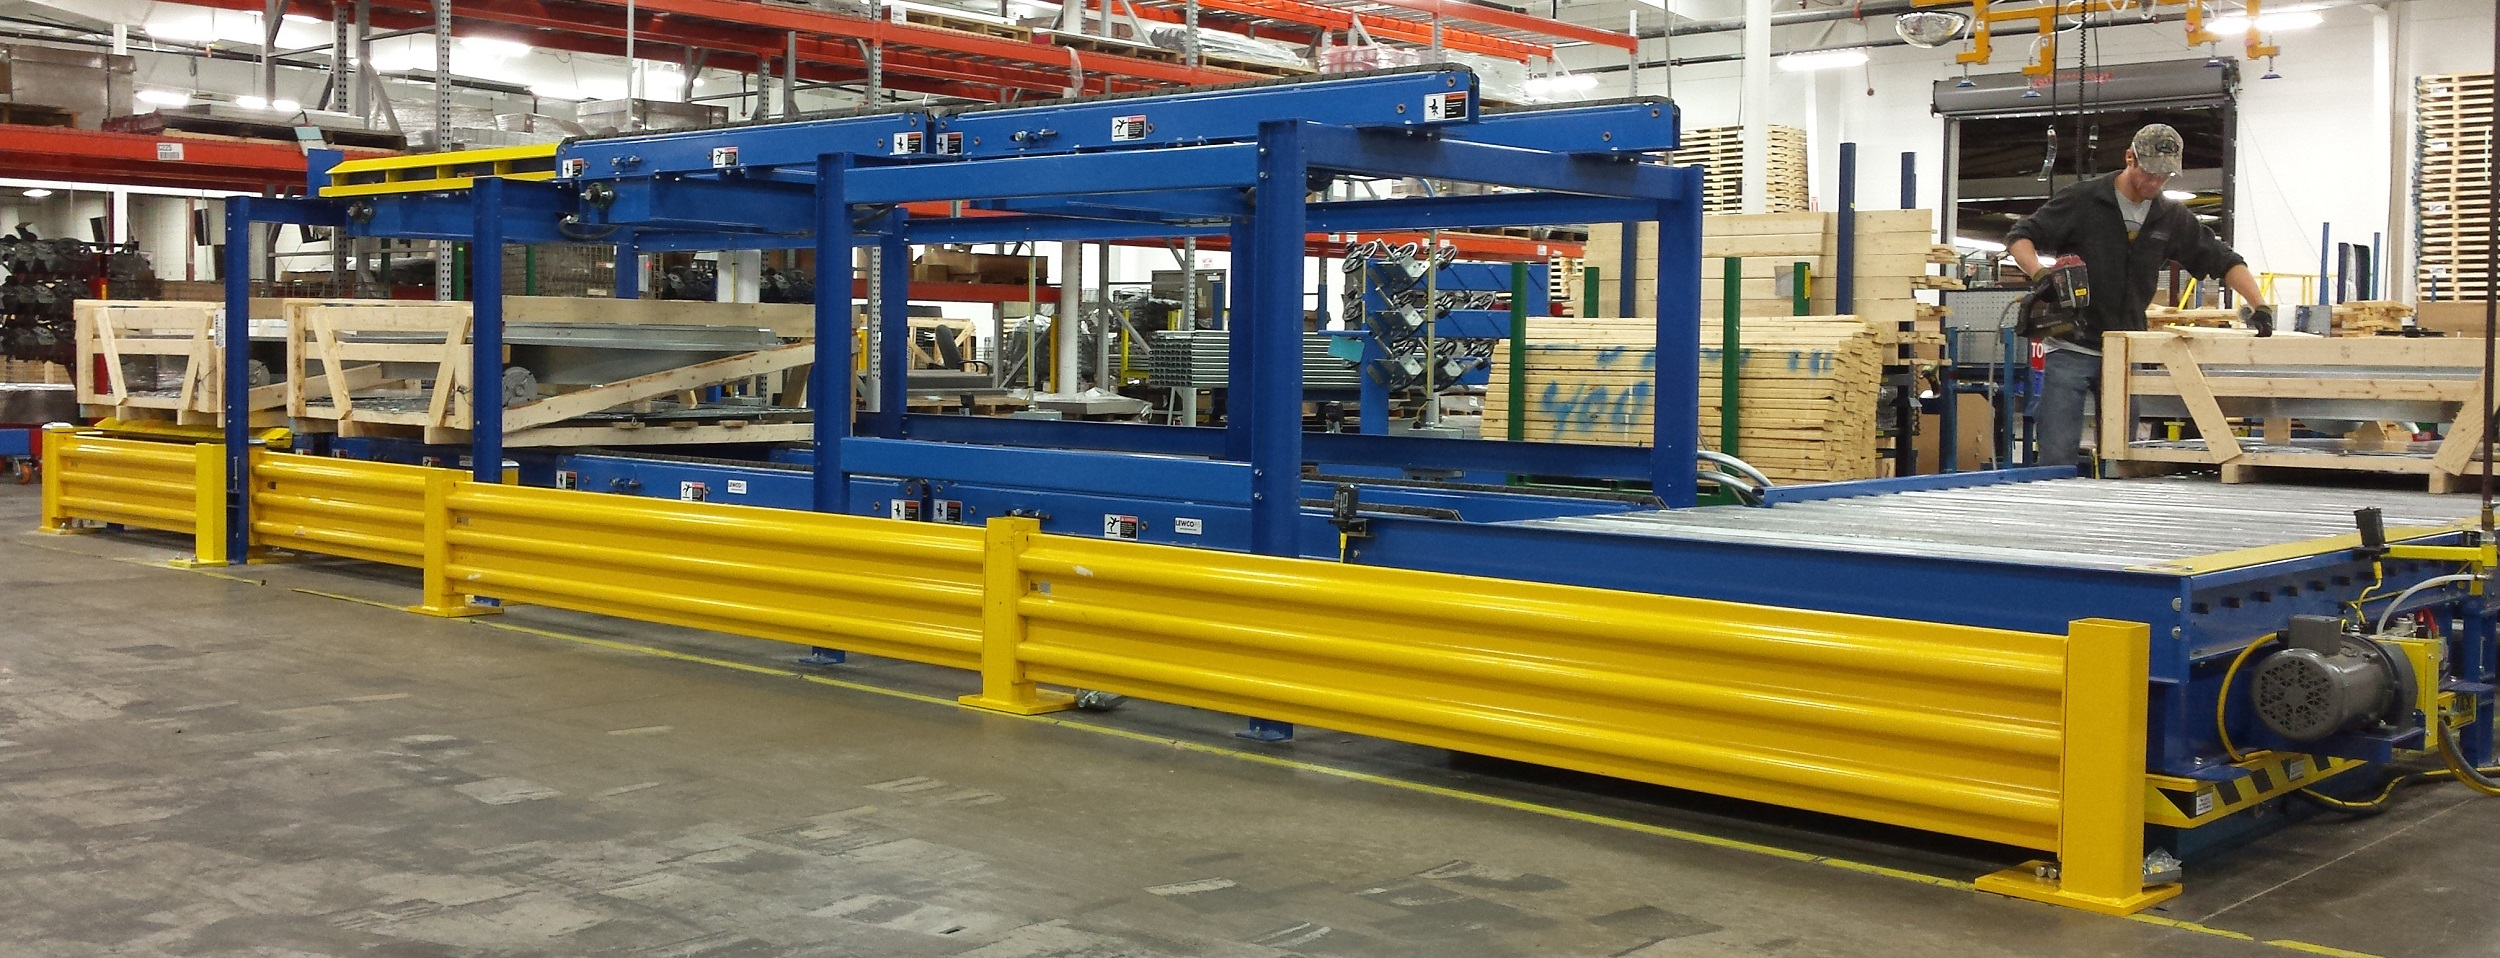 Dual Level Multi Chain Conveyor